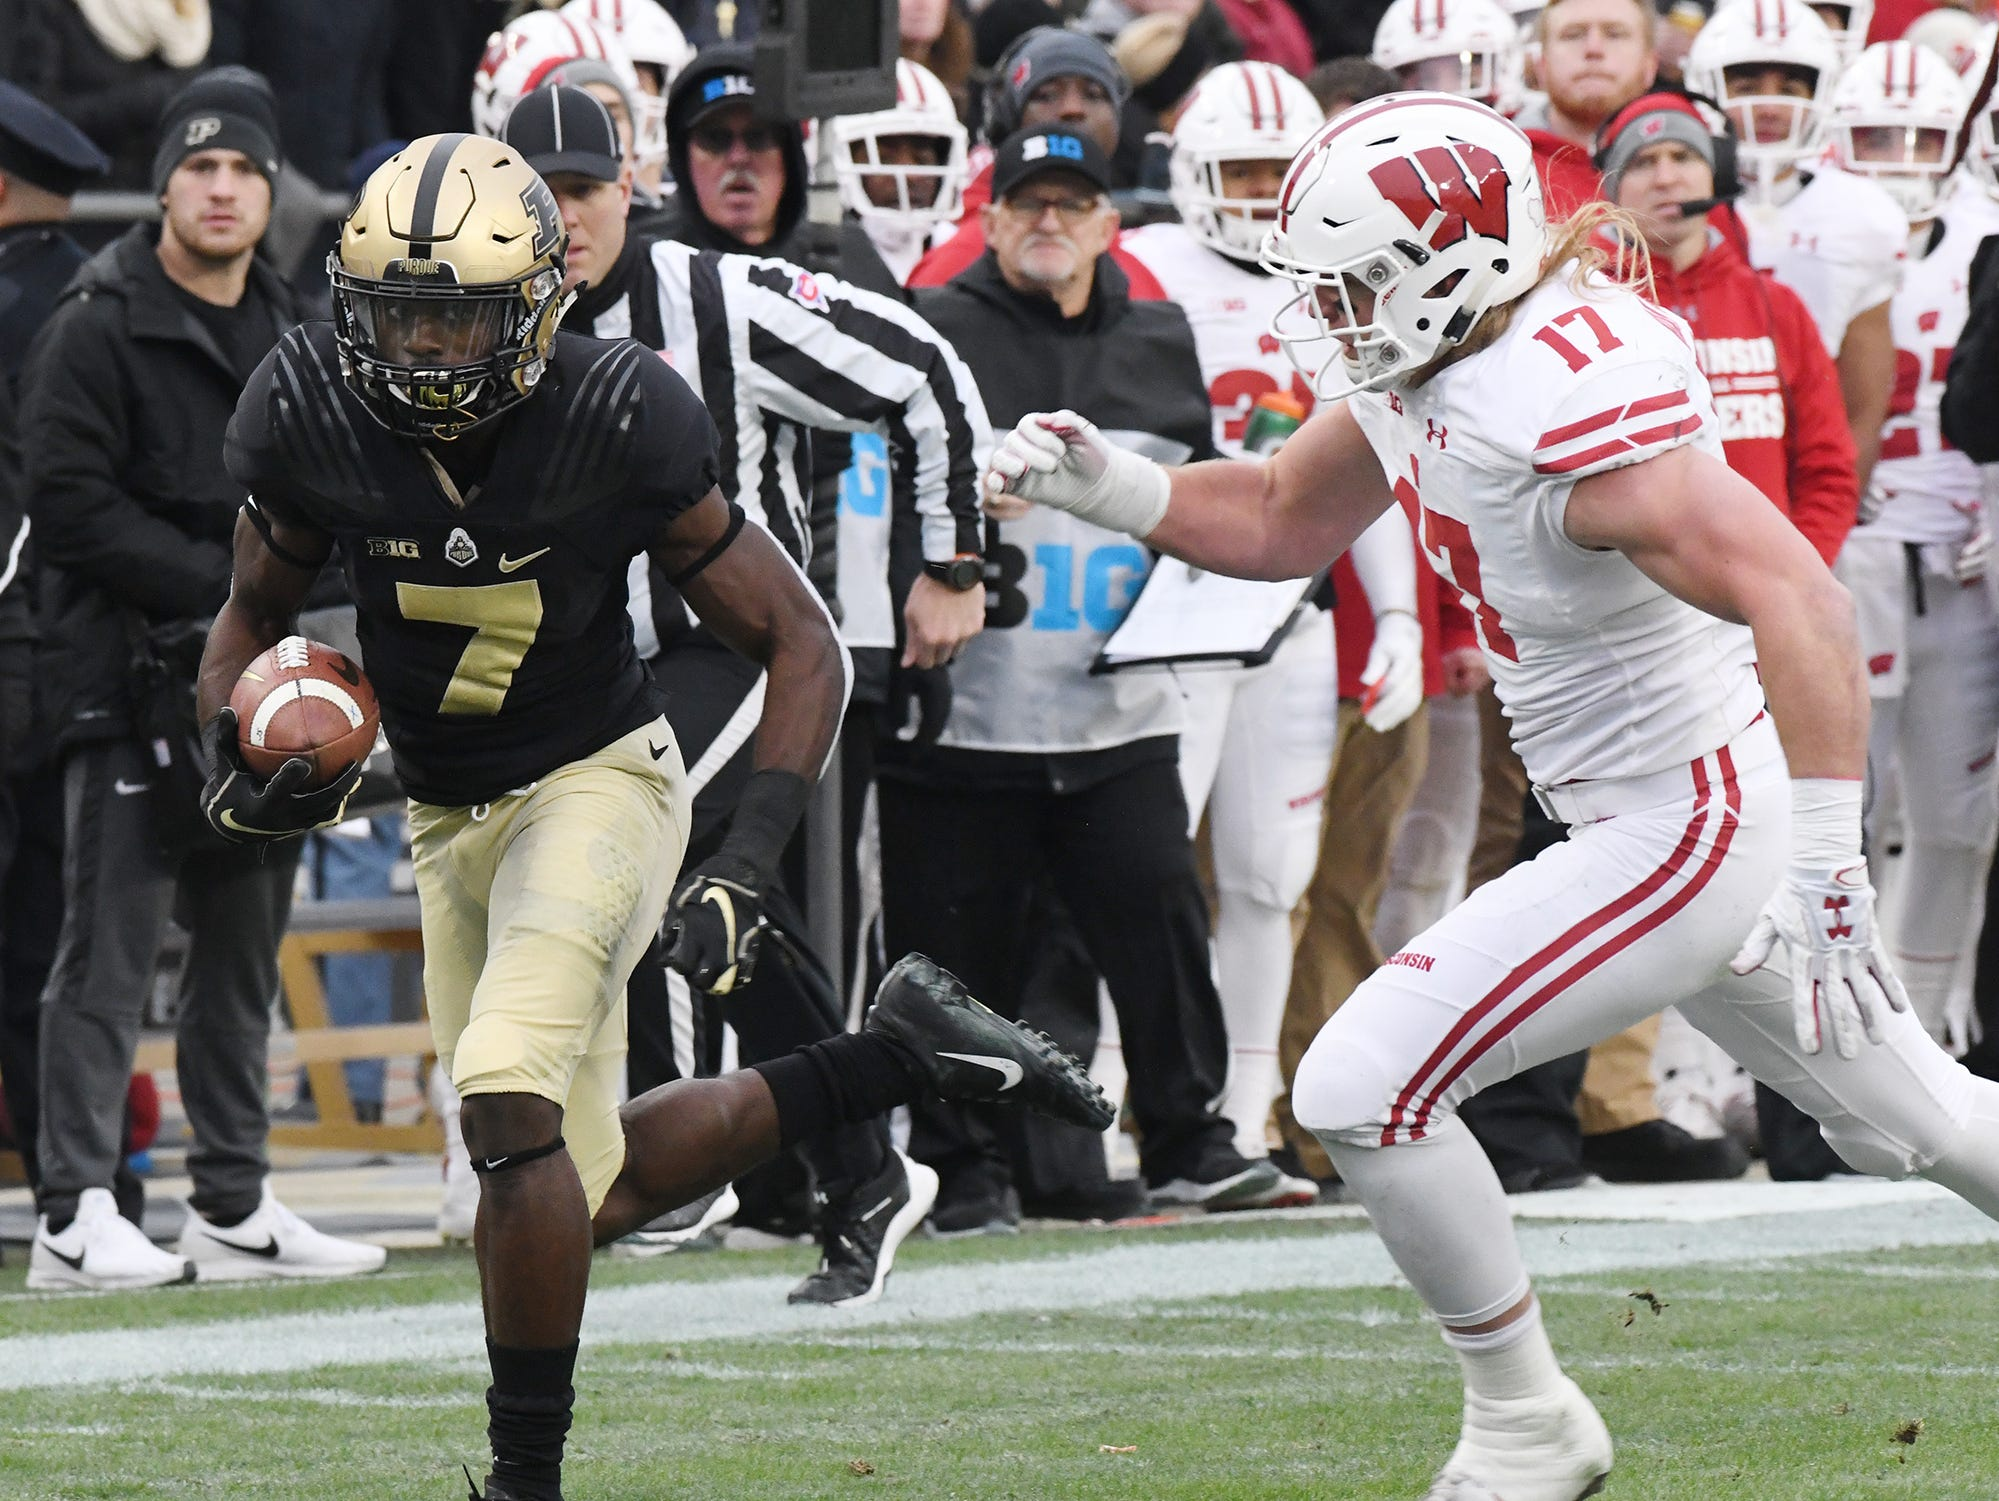 Isaac Zico with a first half pass reception against Wisconsin Saturday, November 17, 2018, at Ross-Ade Stadium.